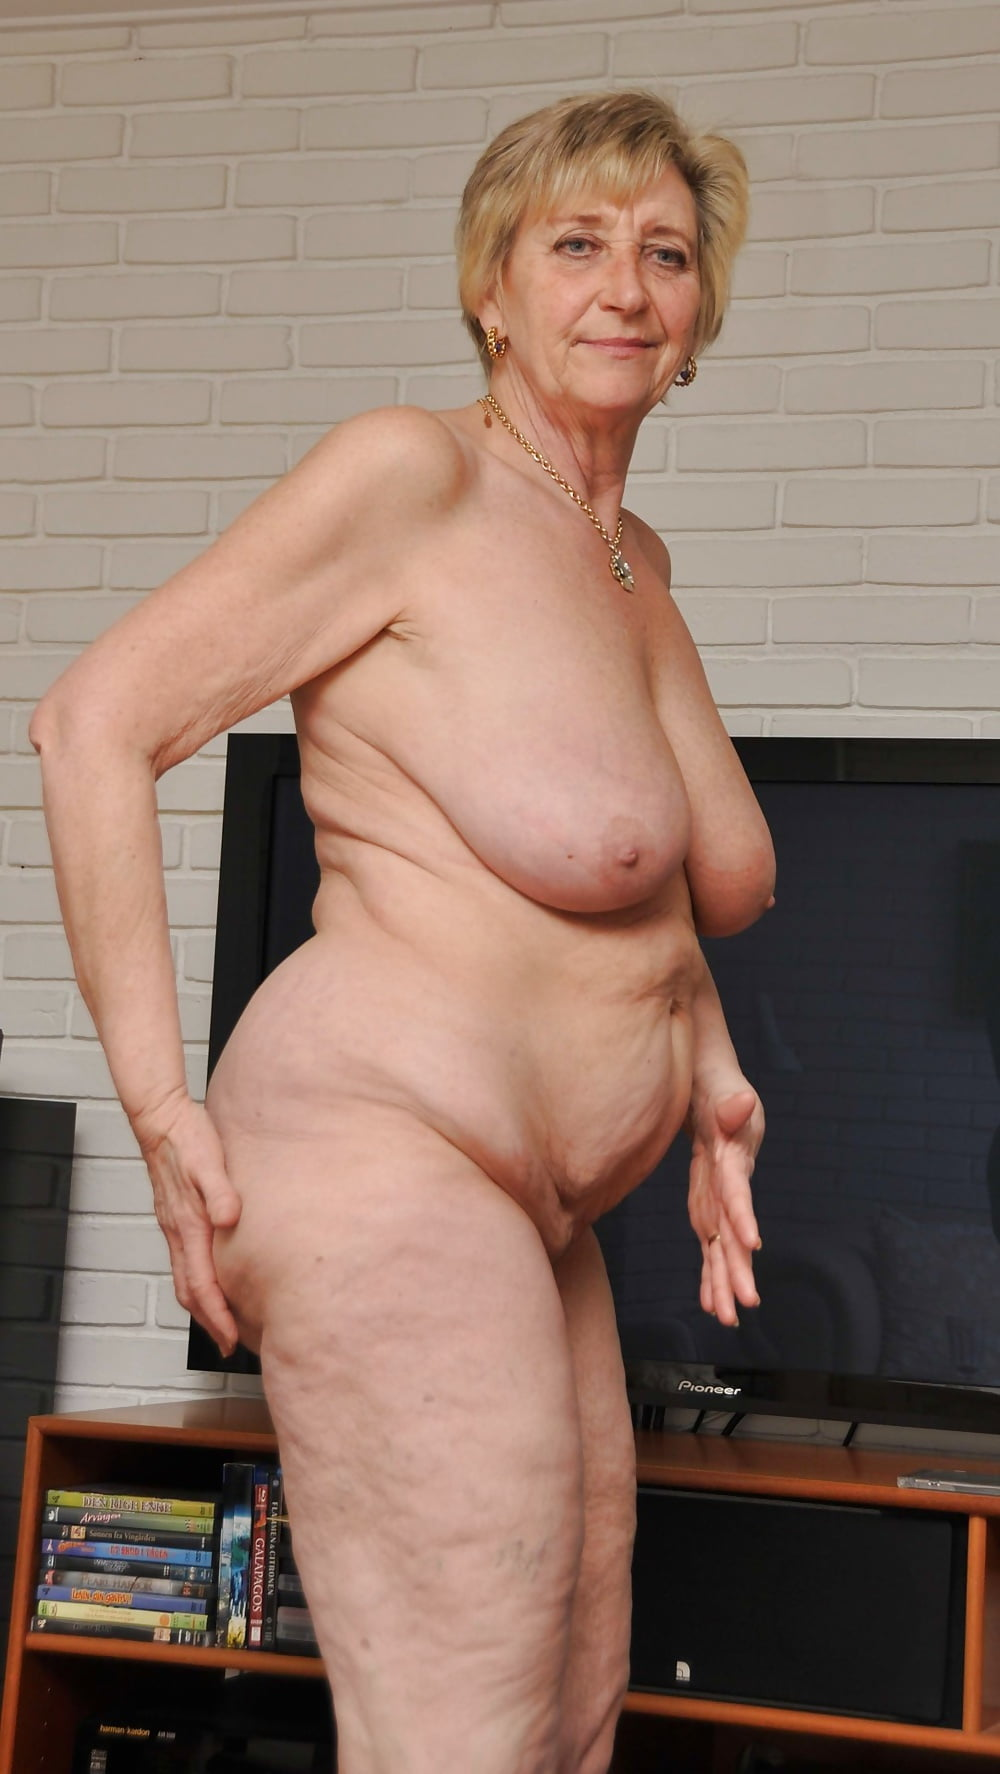 Old women nude pictures — photo 15